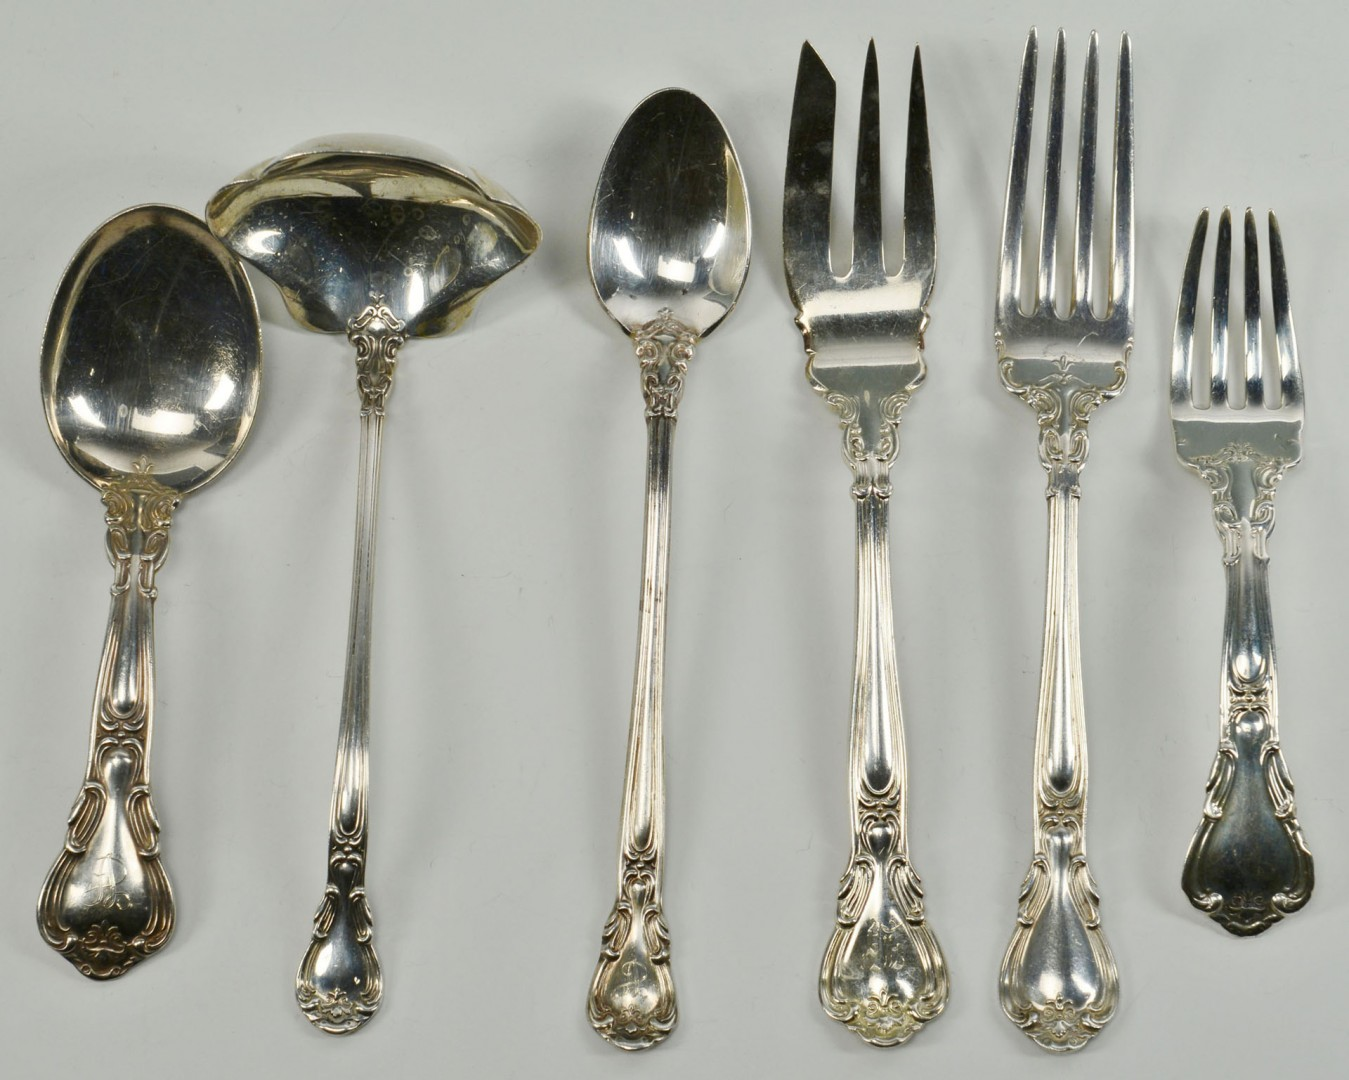 Lot 107: Gorham Chantilly Sterling Silver Flatware, 68 pcs